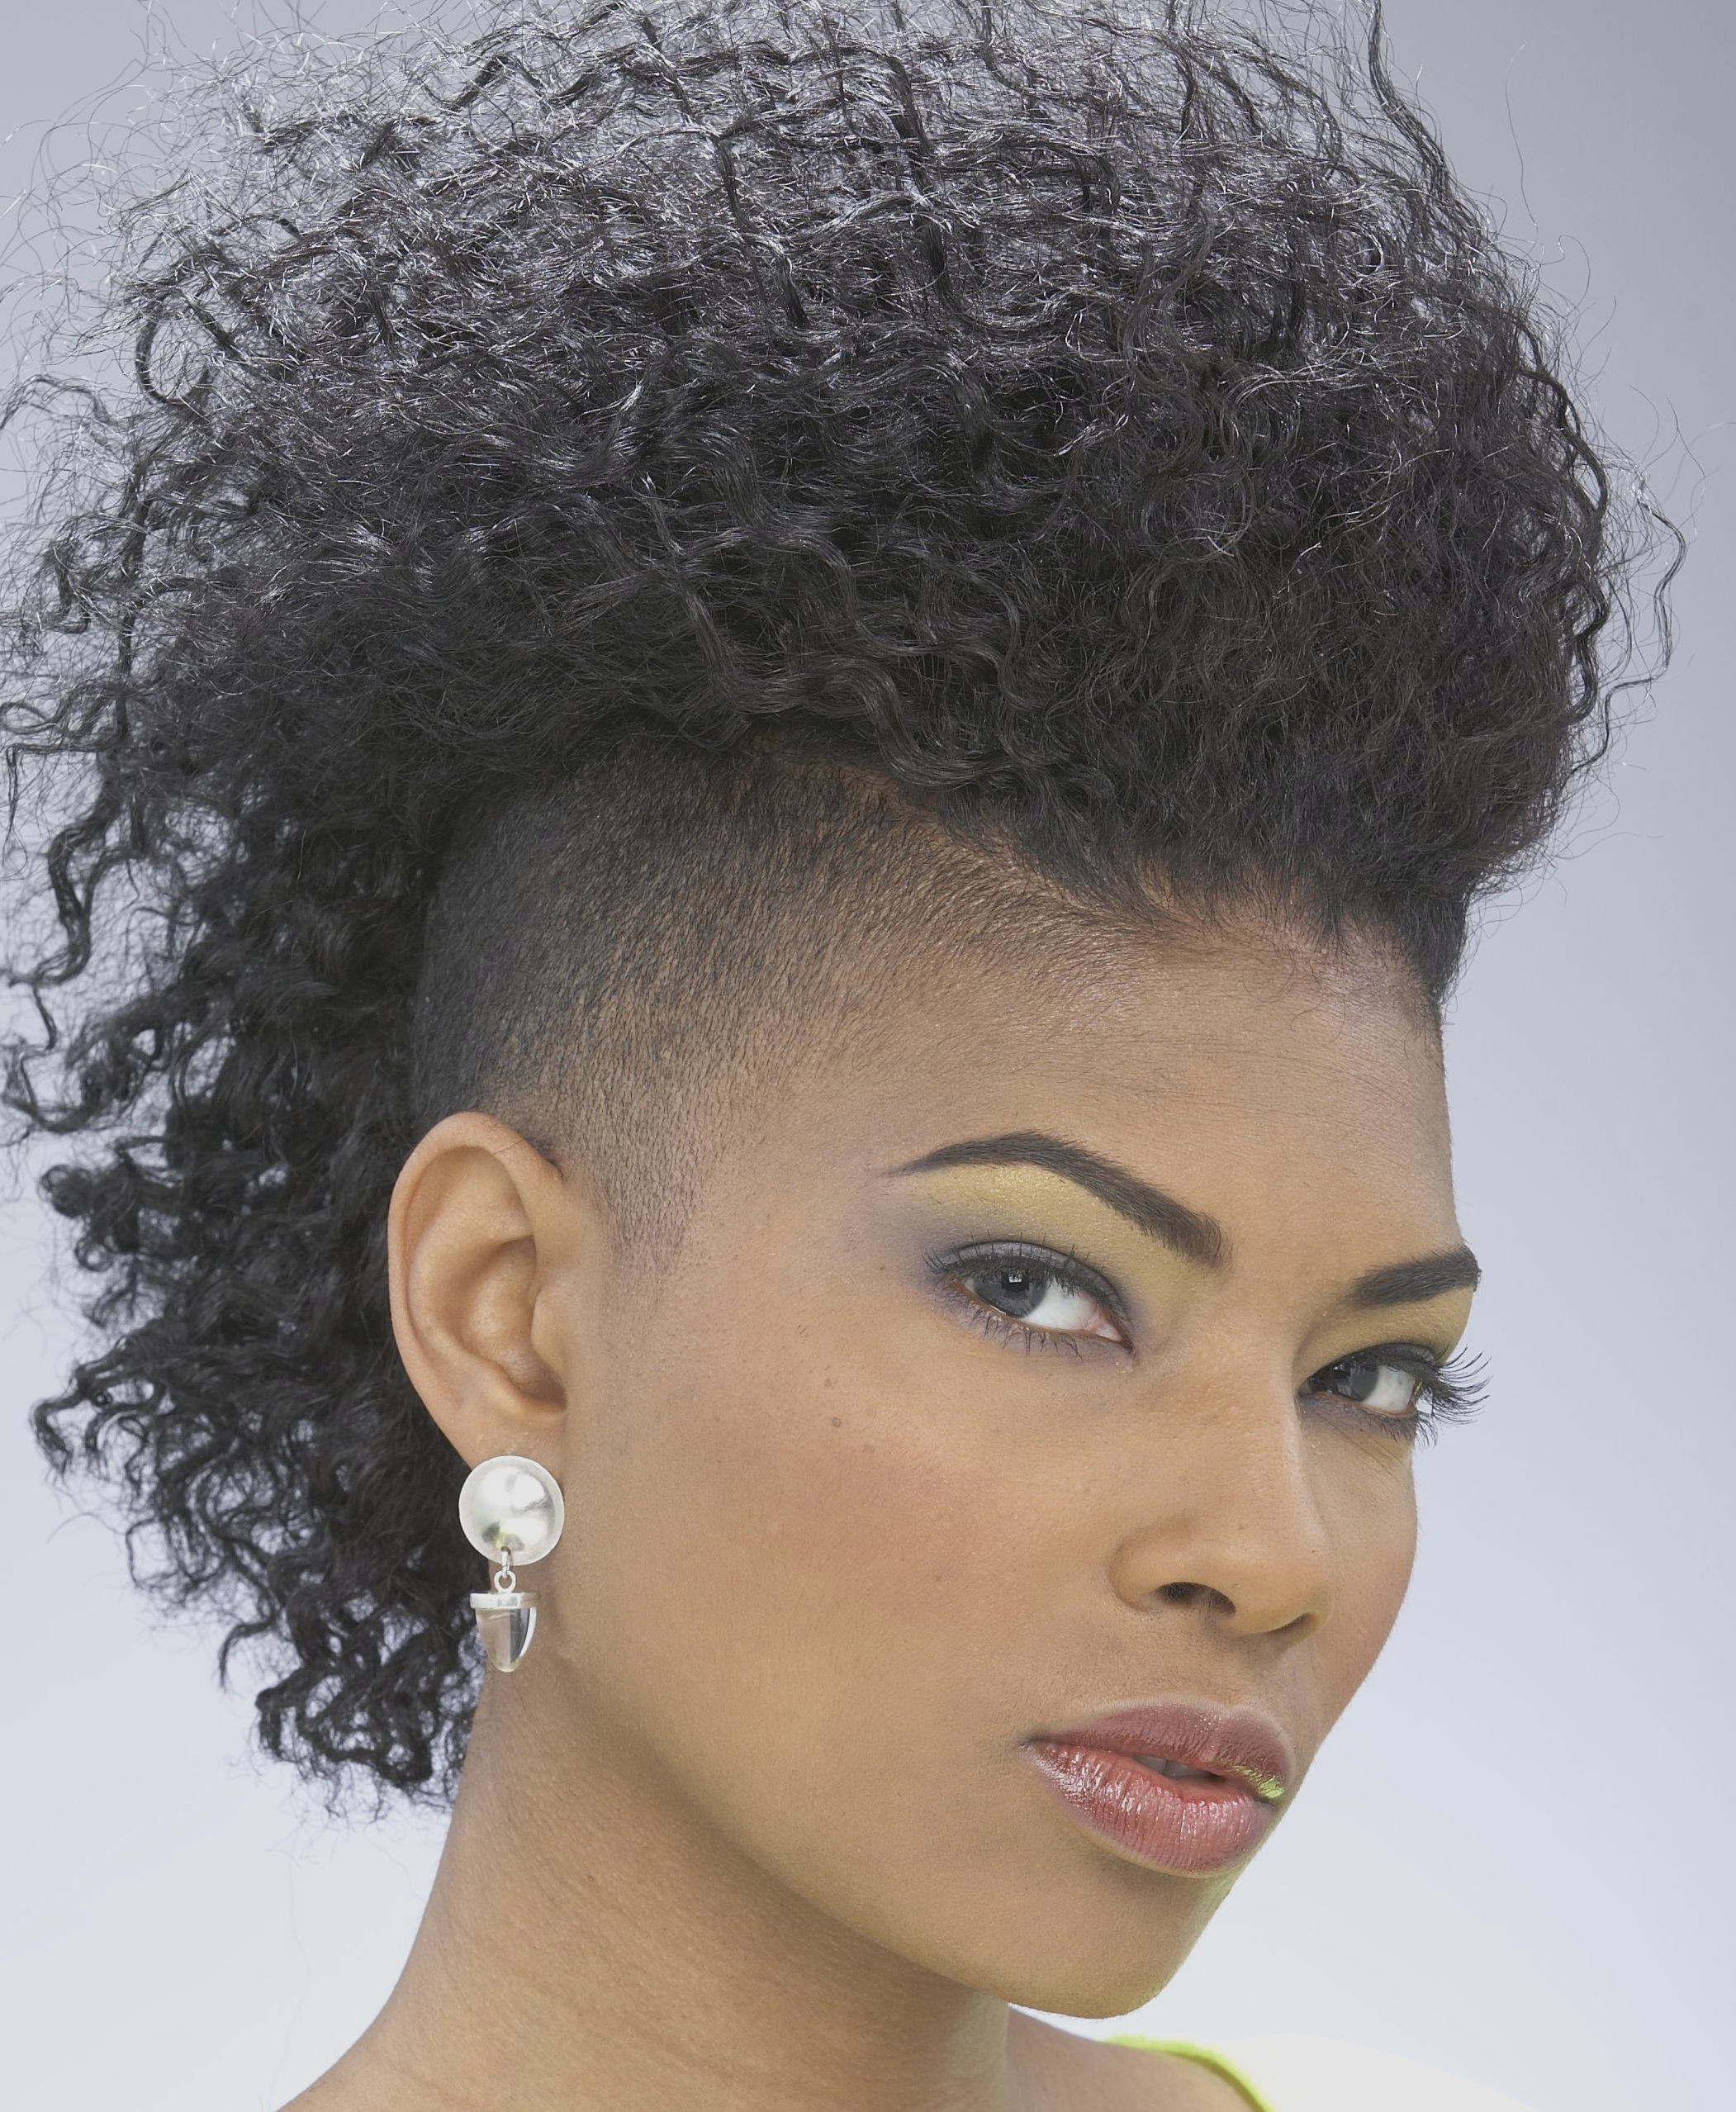 Hairstyles : Mohawk Hairstyles With Curly Weave Best And Regarding Recent Curly Weave Mohawk Haircuts (View 8 of 20)